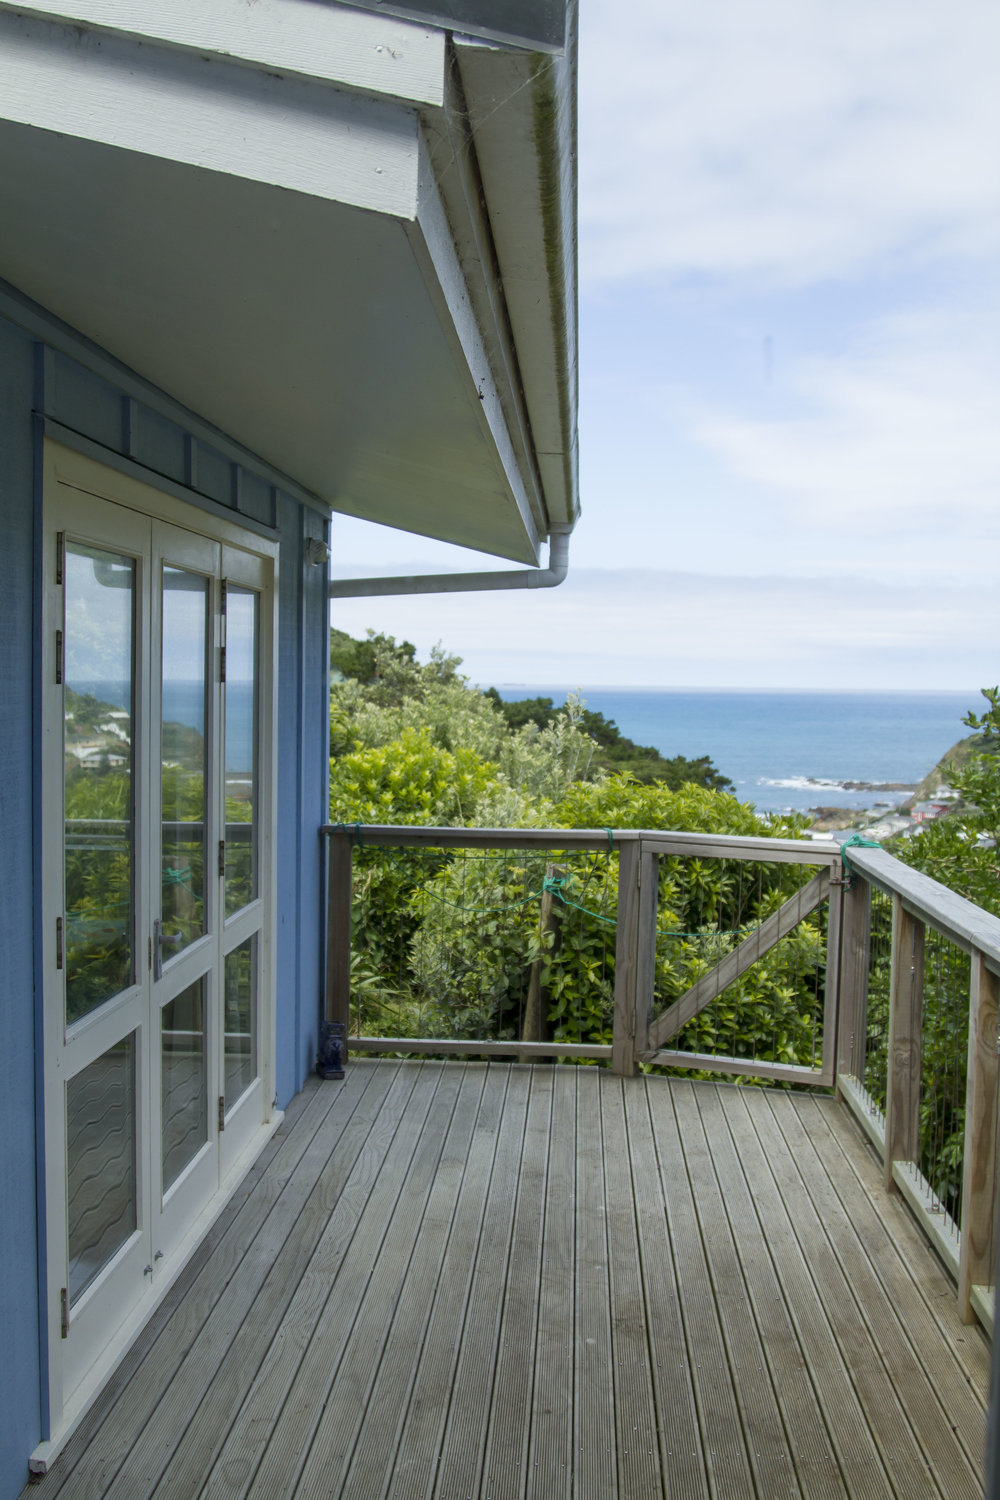 Houghton Bay Cottage  - A small seaside-like cottage with a magnificent big view of the Houghton Bay south coast. The bedroom area needed to be enlarged and include a seperate sitting/ relaxing room, and the two cottage buildings required easy covered access...  more